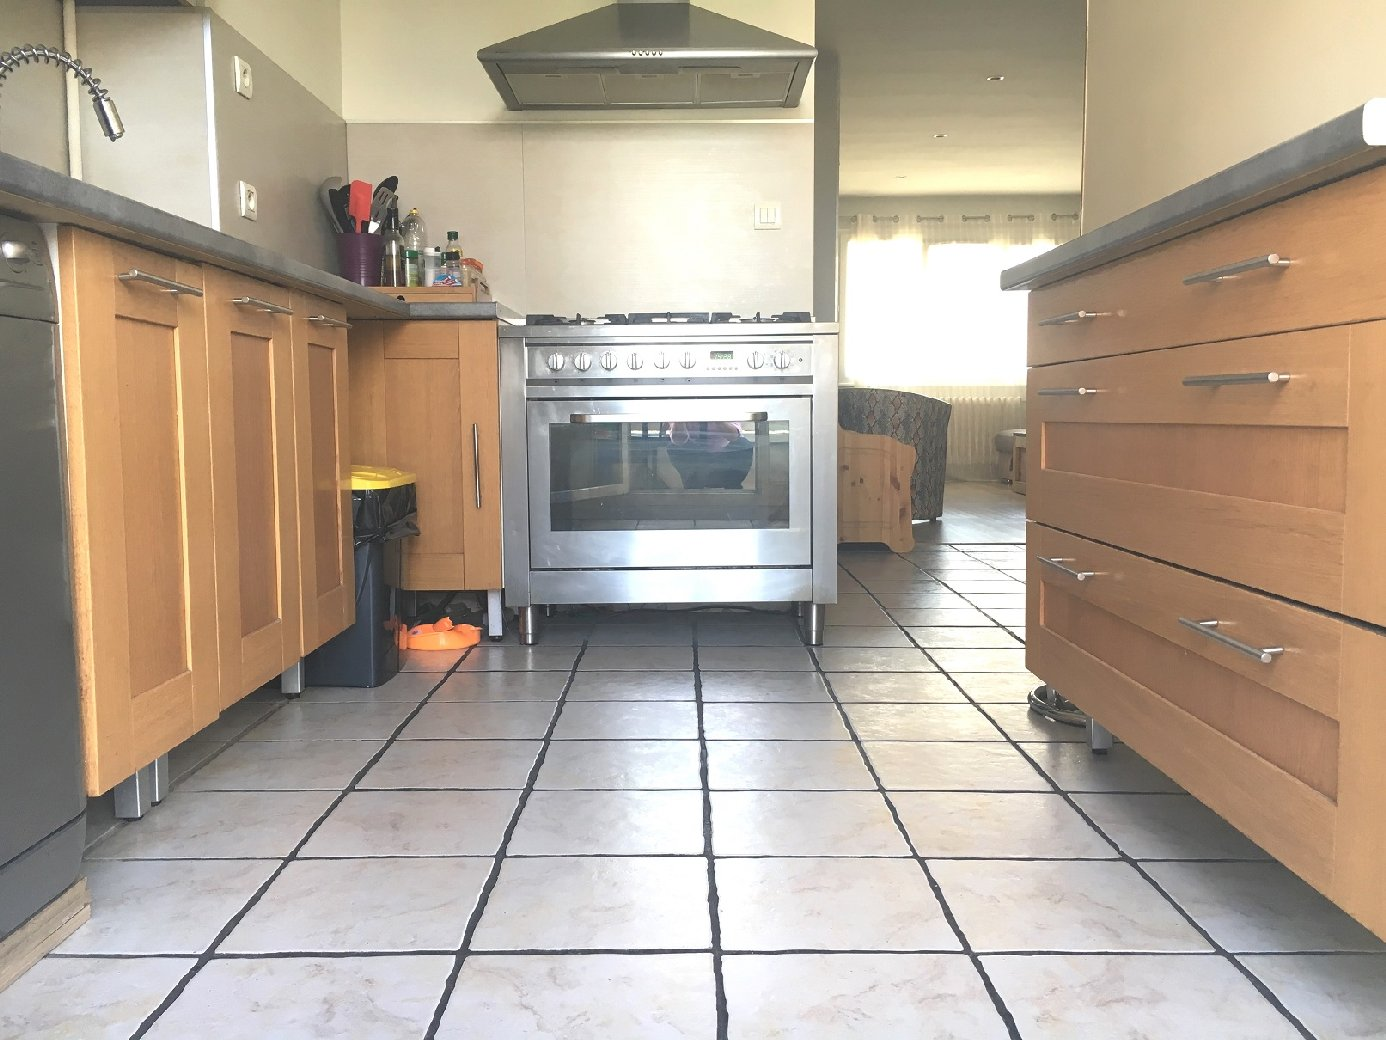 Vente appartement annecy 5 pi ces 74 m2 for Garage ad annecy